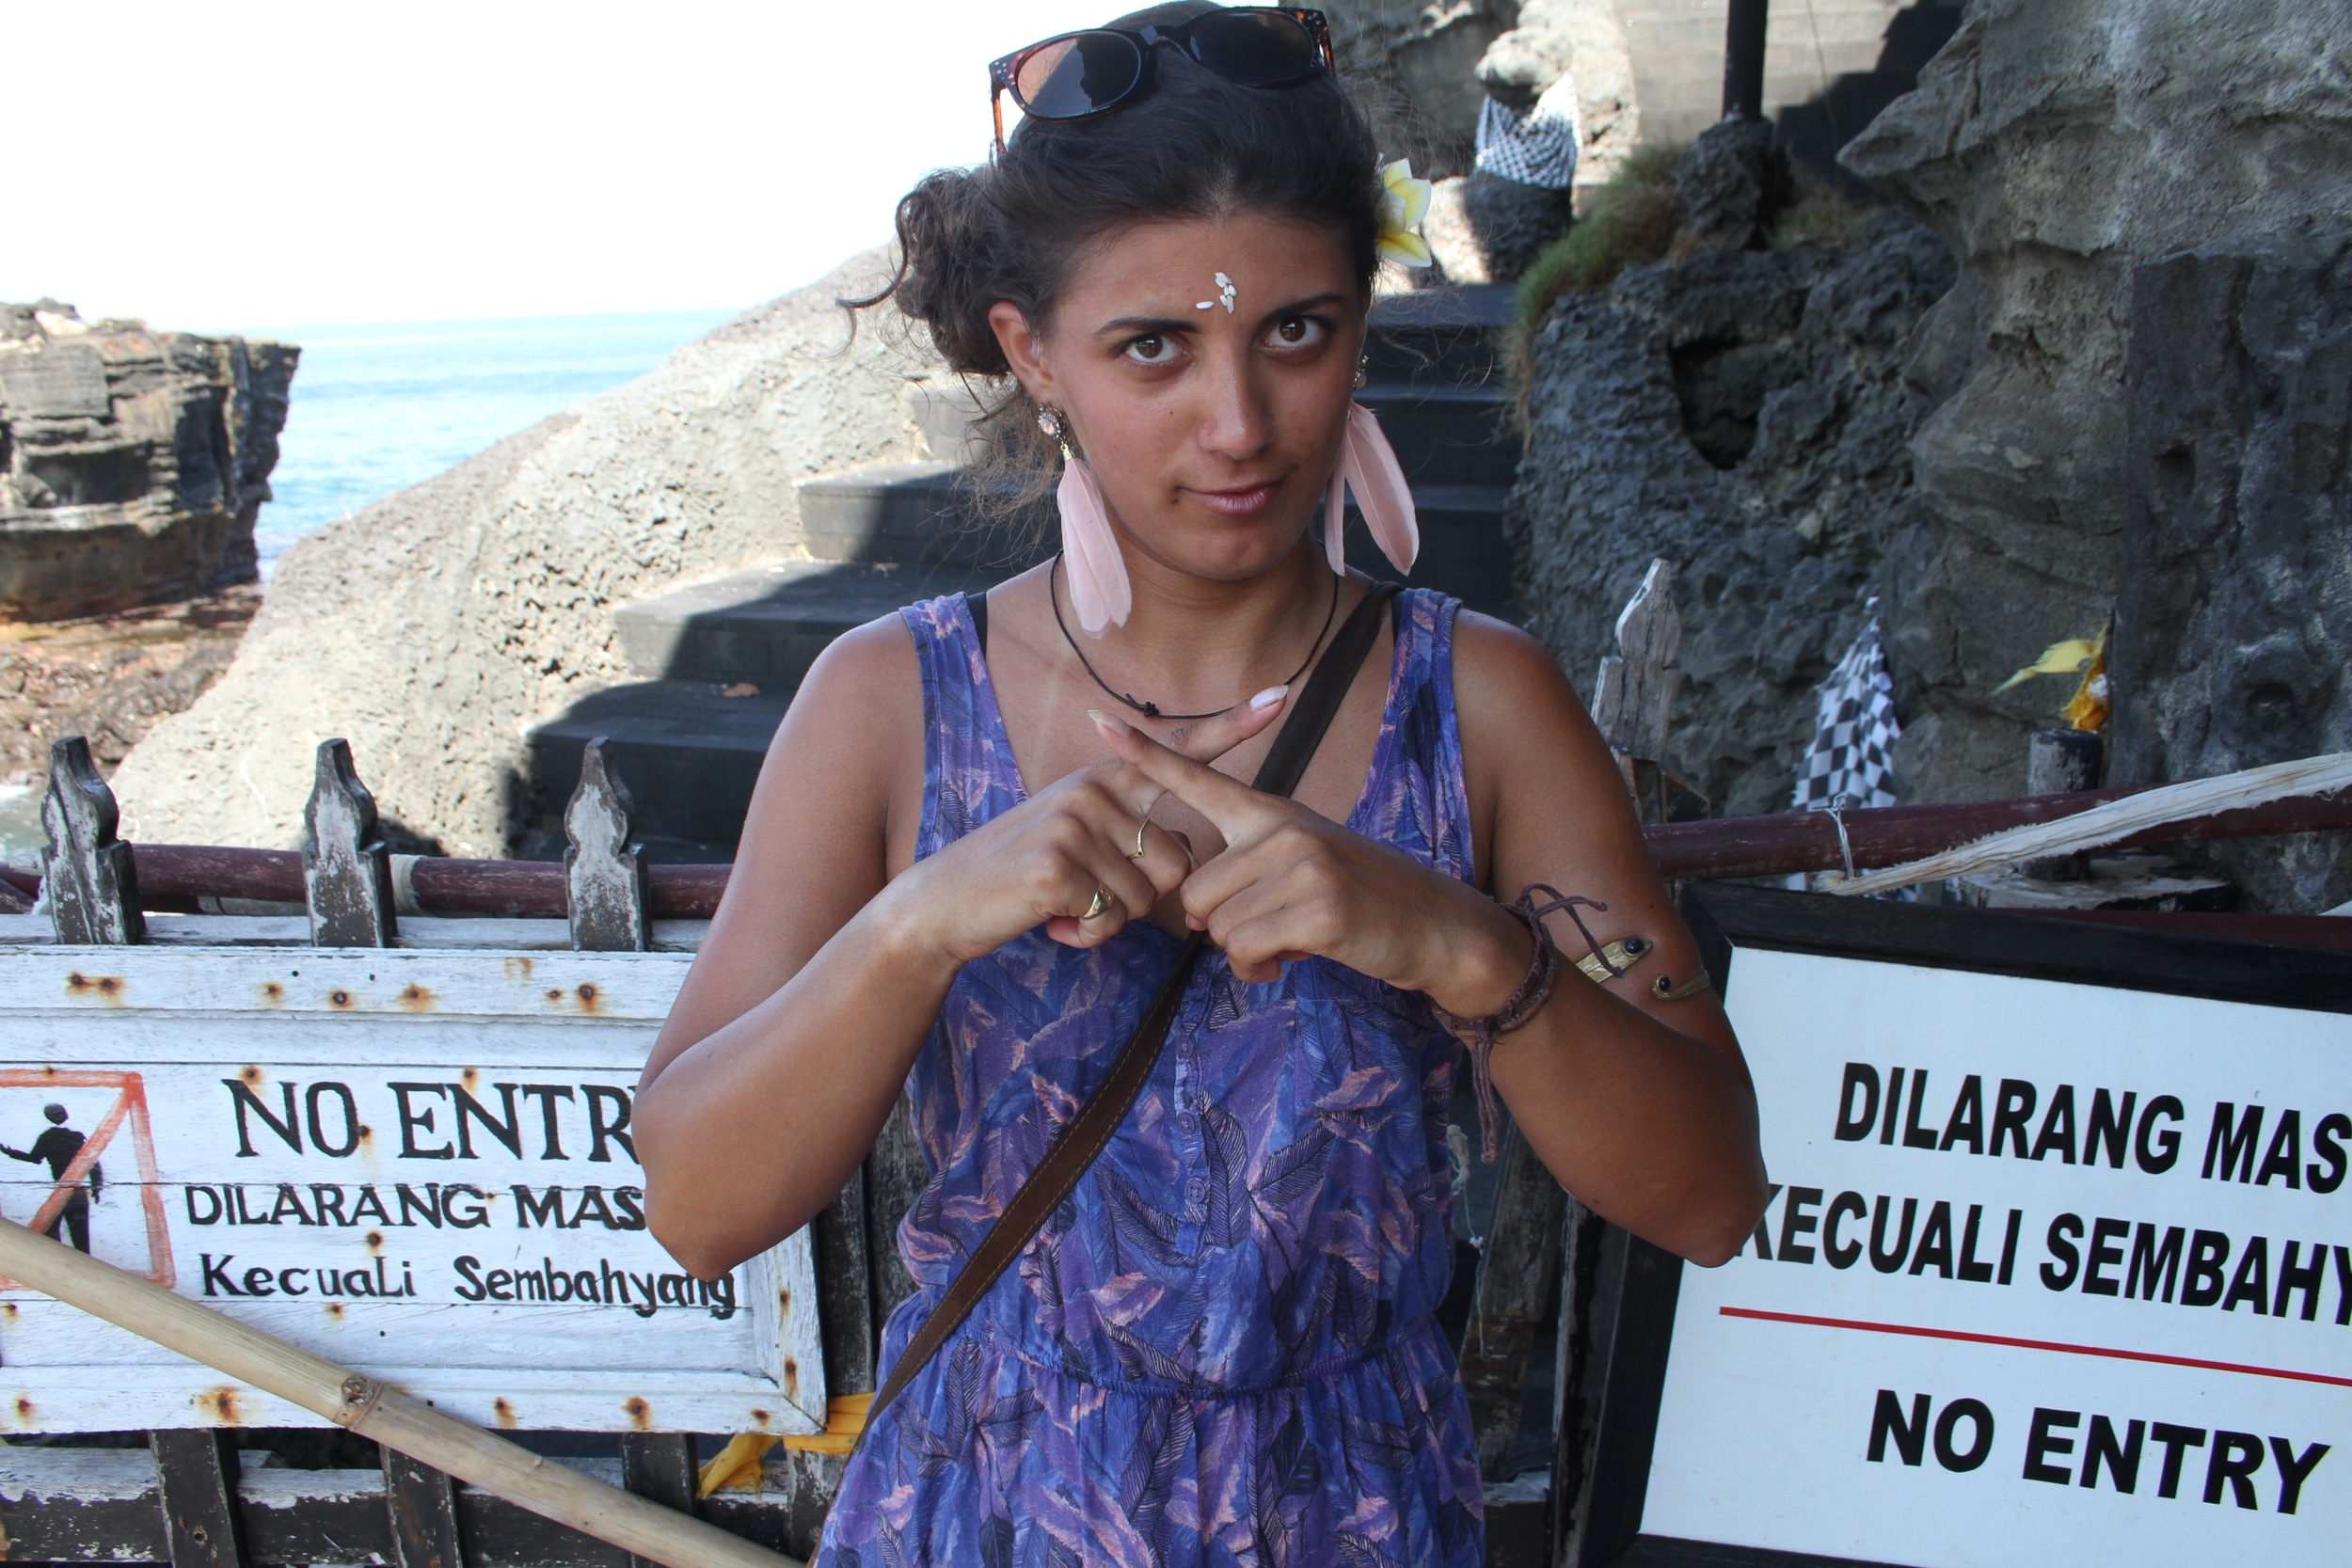 Dilara in Tanah Lot, Bali, Indonesia (the reason for the hand symbol? Dilarang = forbidden in Indonesian)